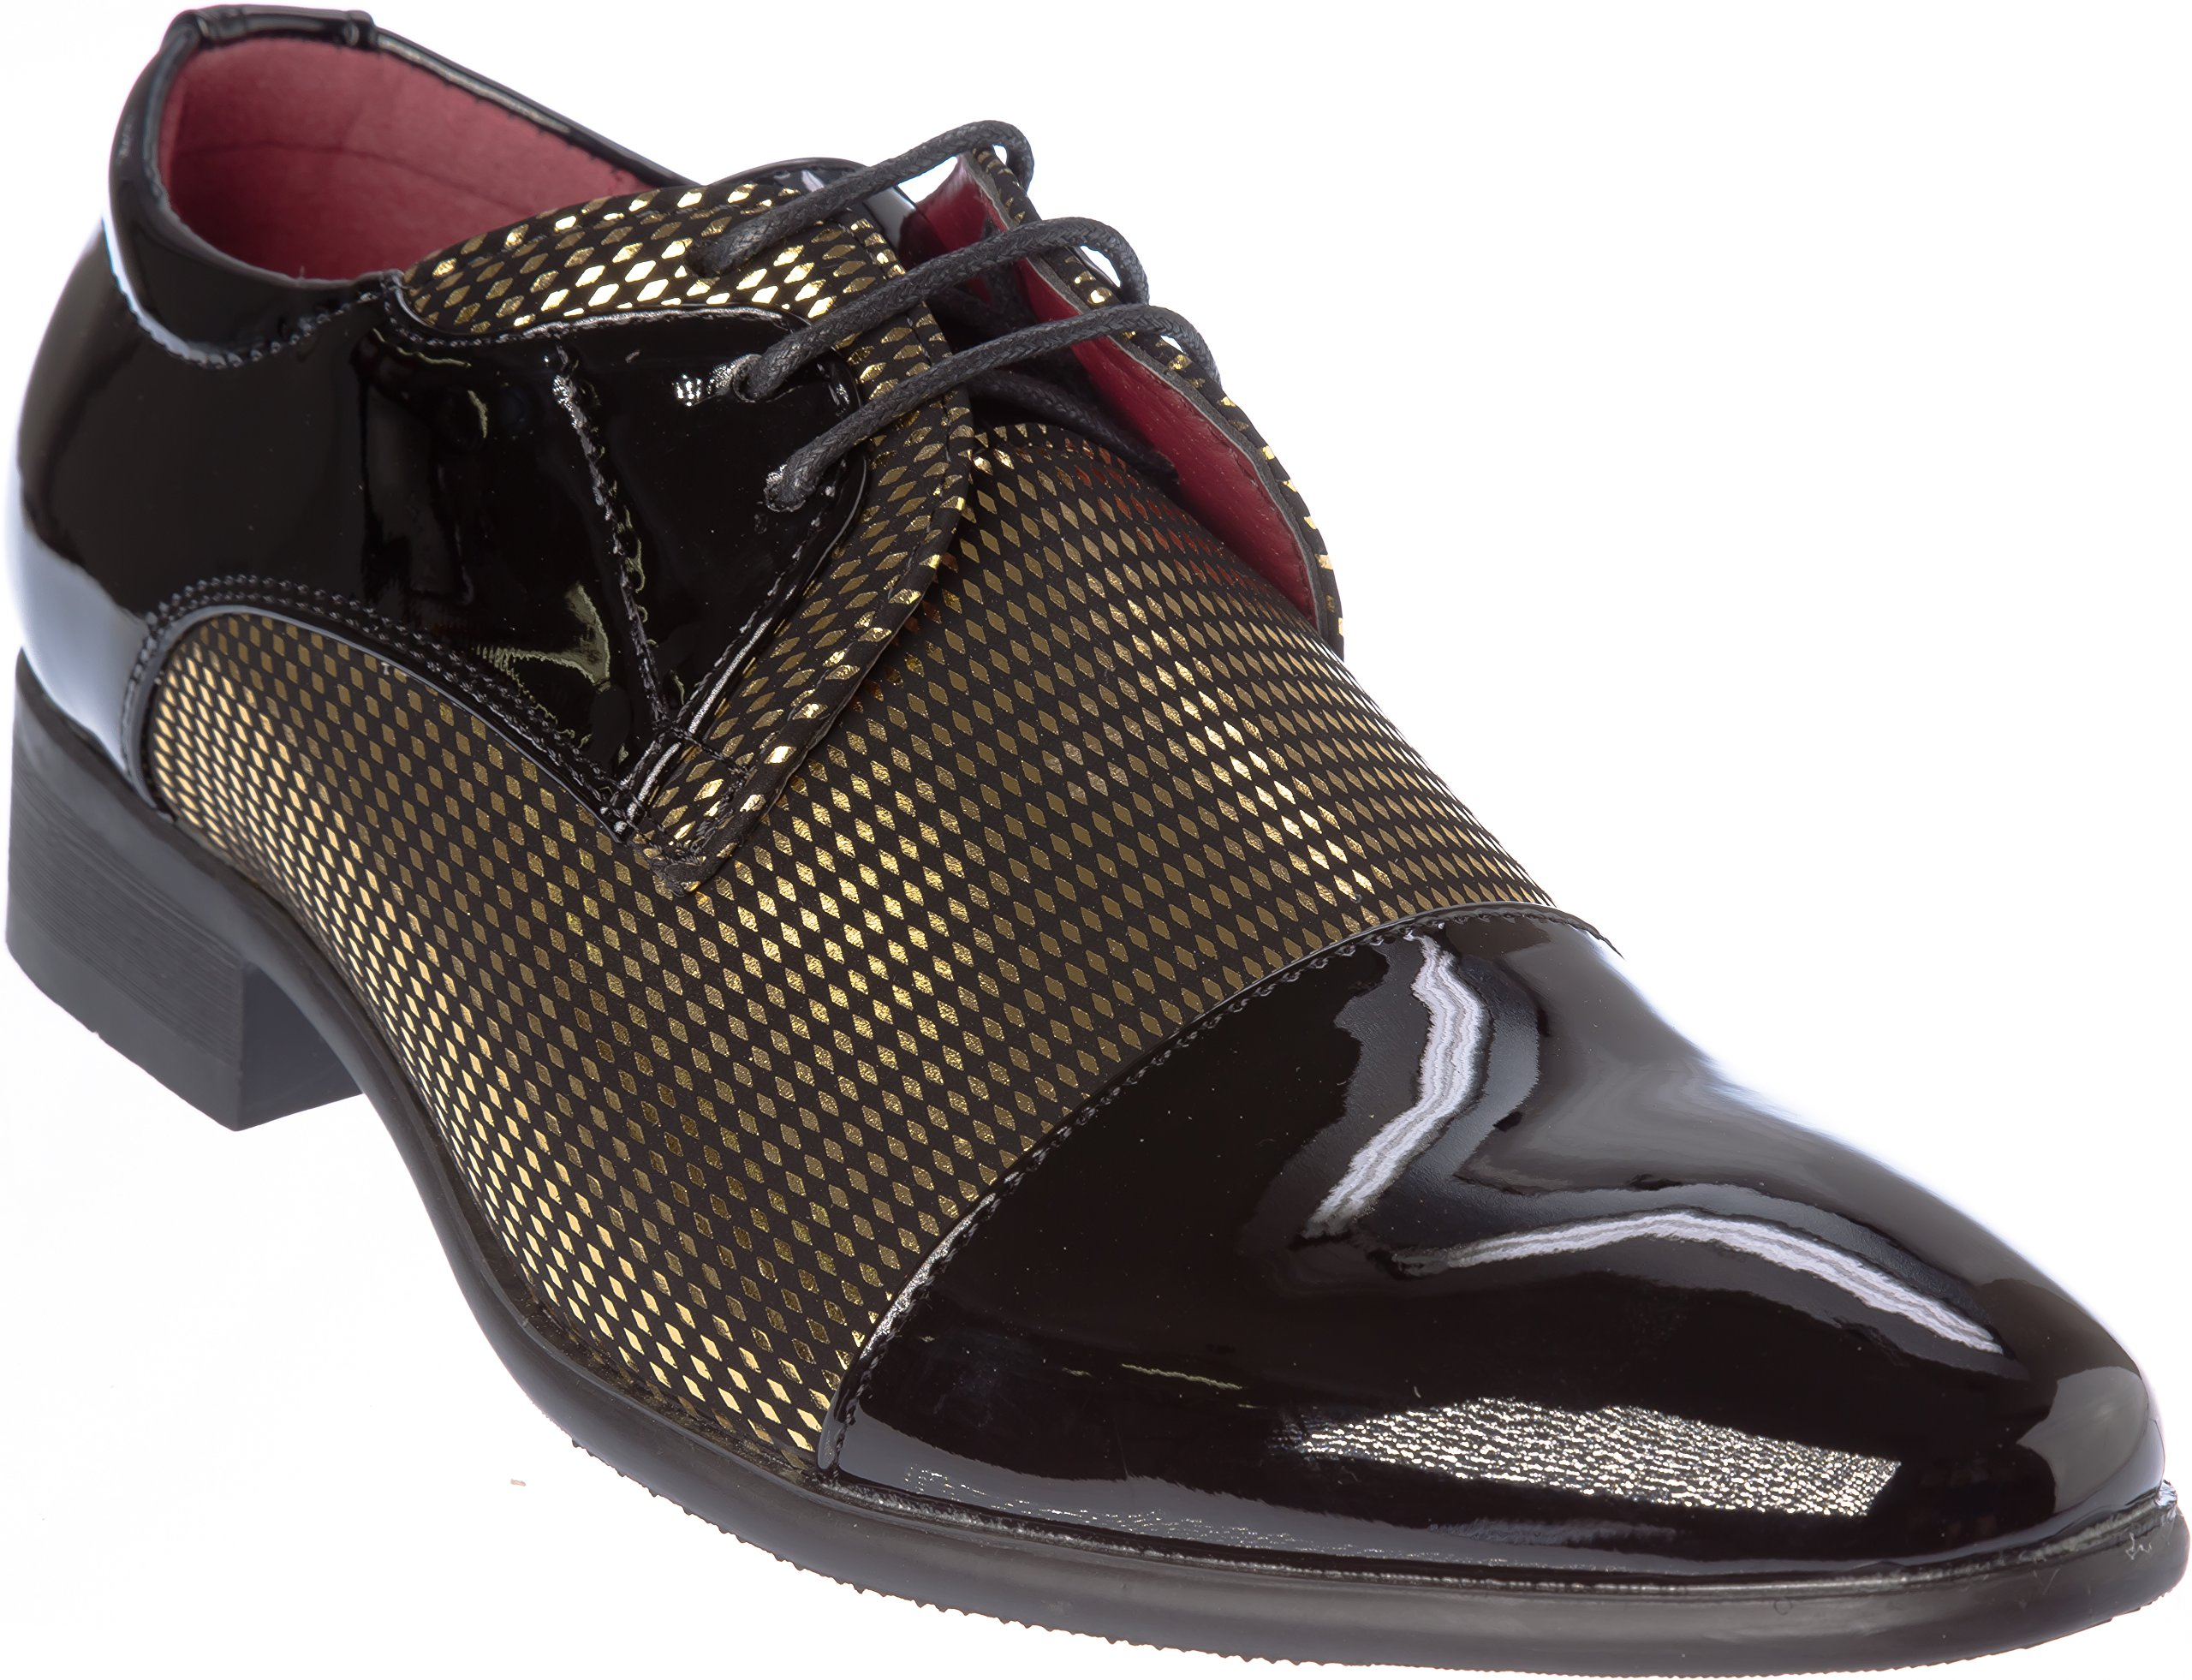 novak01 Mens Lace-up Oxford Black-Gold Dress-Shoes Size 13